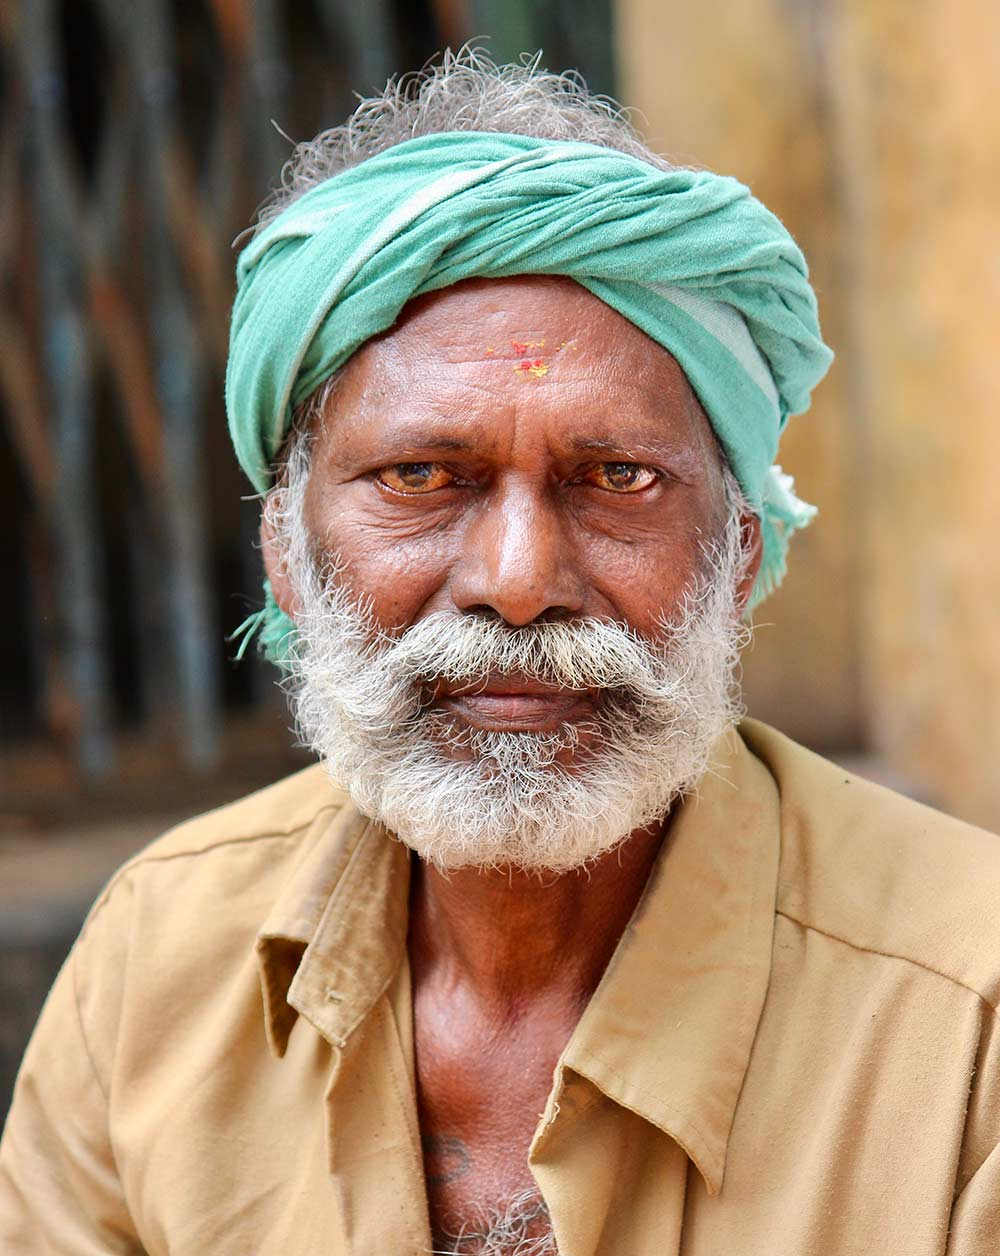 Man at Pongal Festival in India